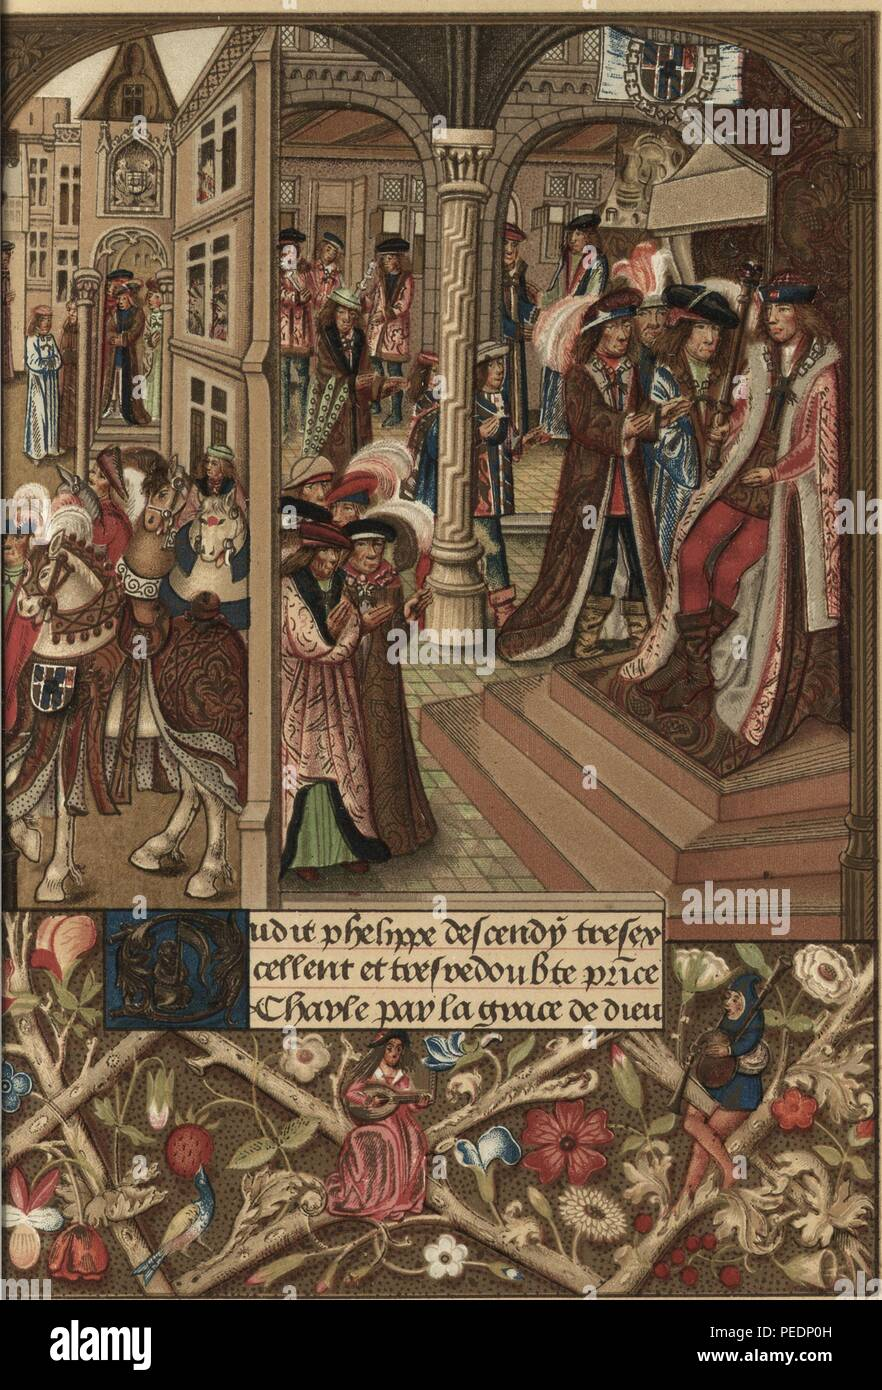 Color print of fifteenth-century ruler, Charles the Bold, Duke of Burgandy, seated on his throne (at right) with his barons and councilors crowded next to him and at the base of the steps, with medieval architecture, horses, and people in the background, and marginalia in the lower register, after an original miniature painting from the manuscript Chroniques abregees des Anciens Rois et Ducs de Bourgogne, 1870. Courtesy Internet Archive. () - Stock Image